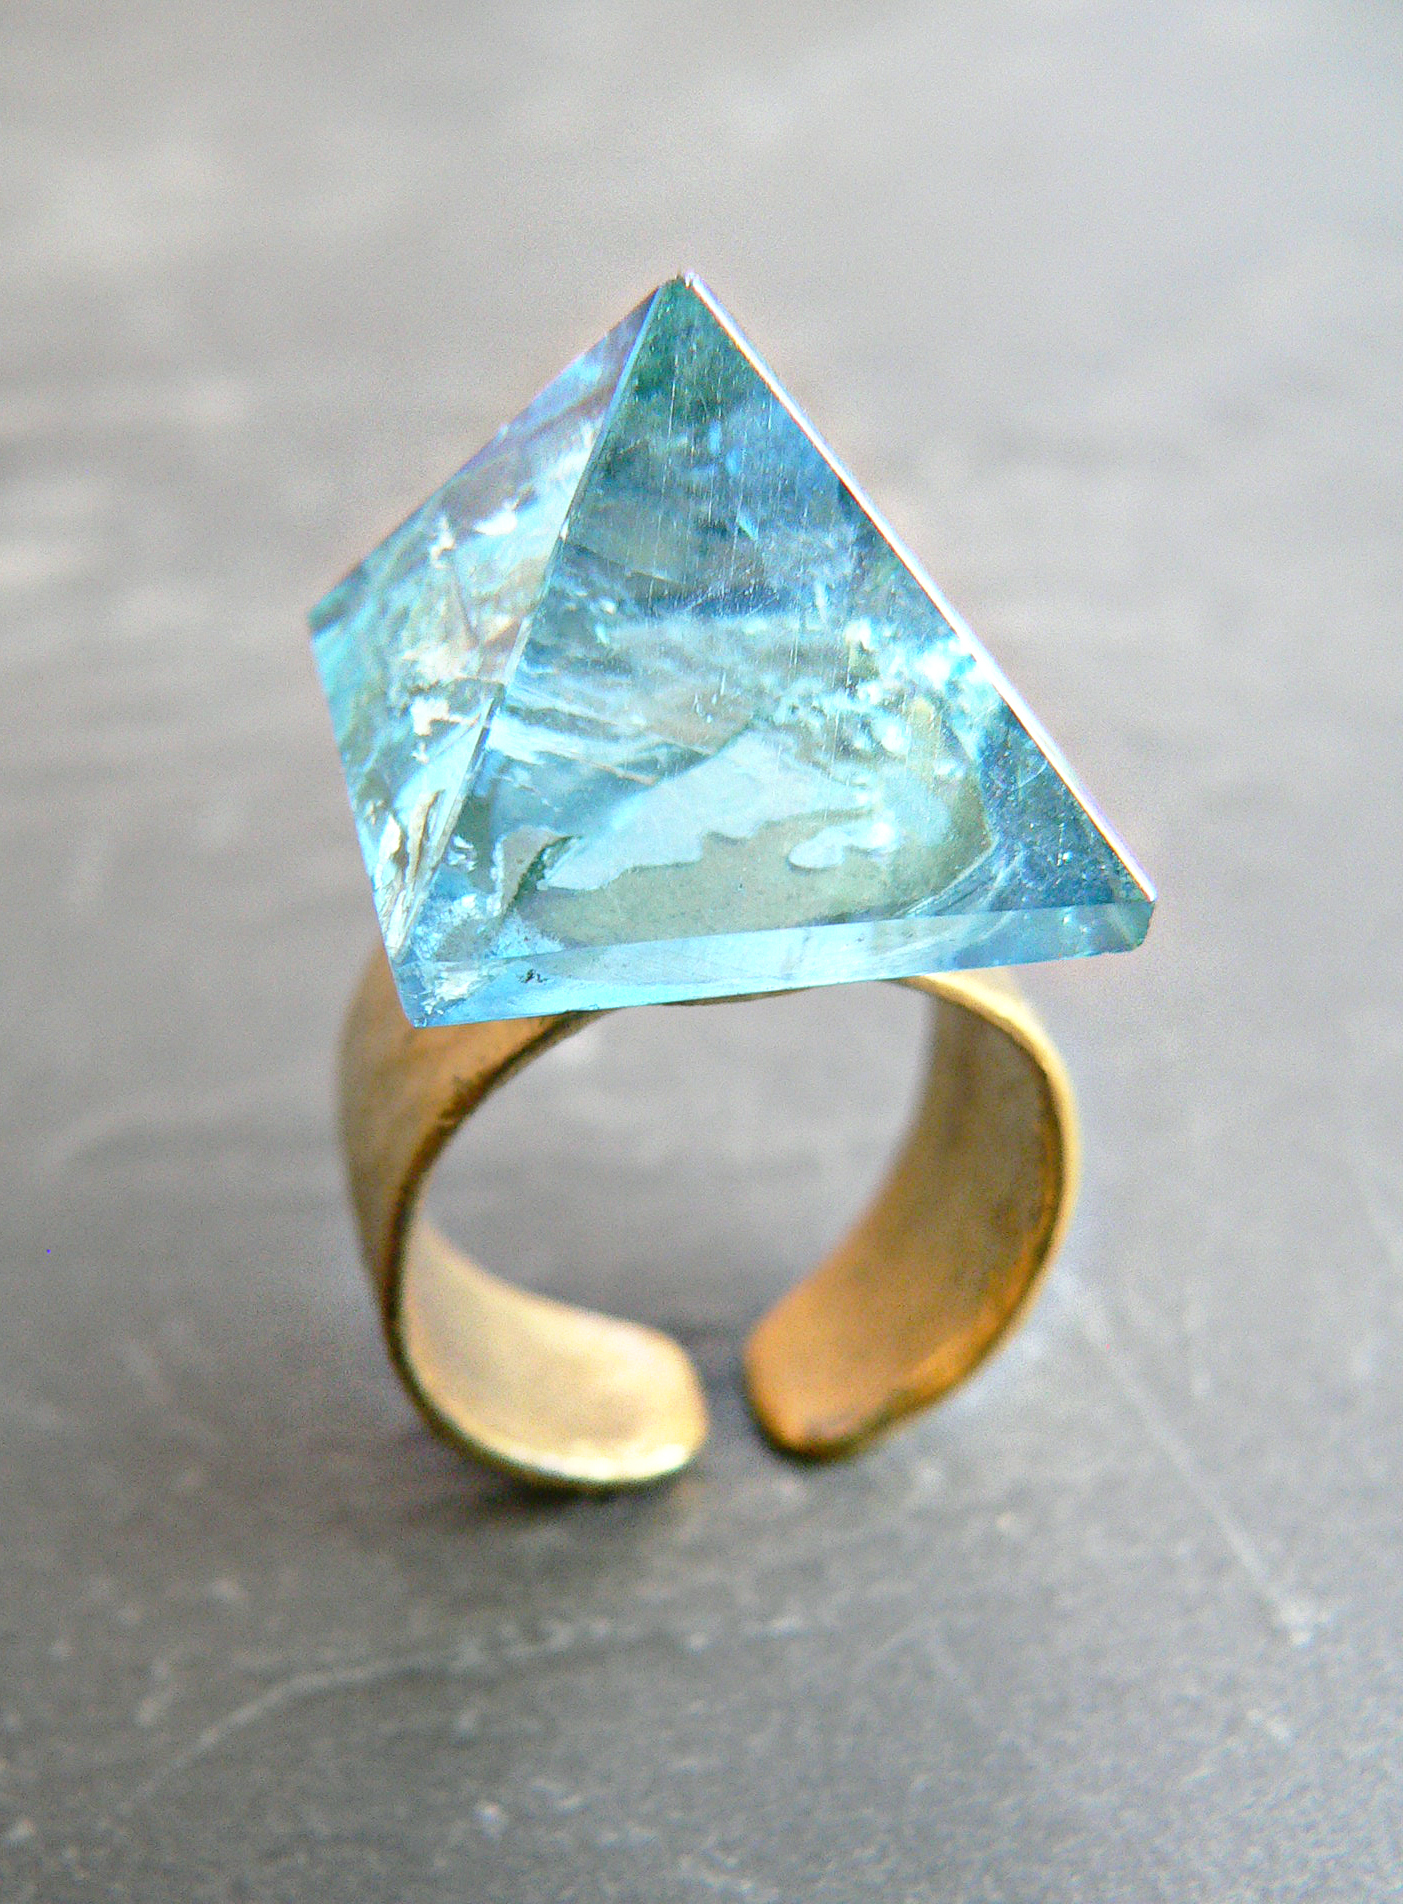 AQUA AURA PYRAMID RING